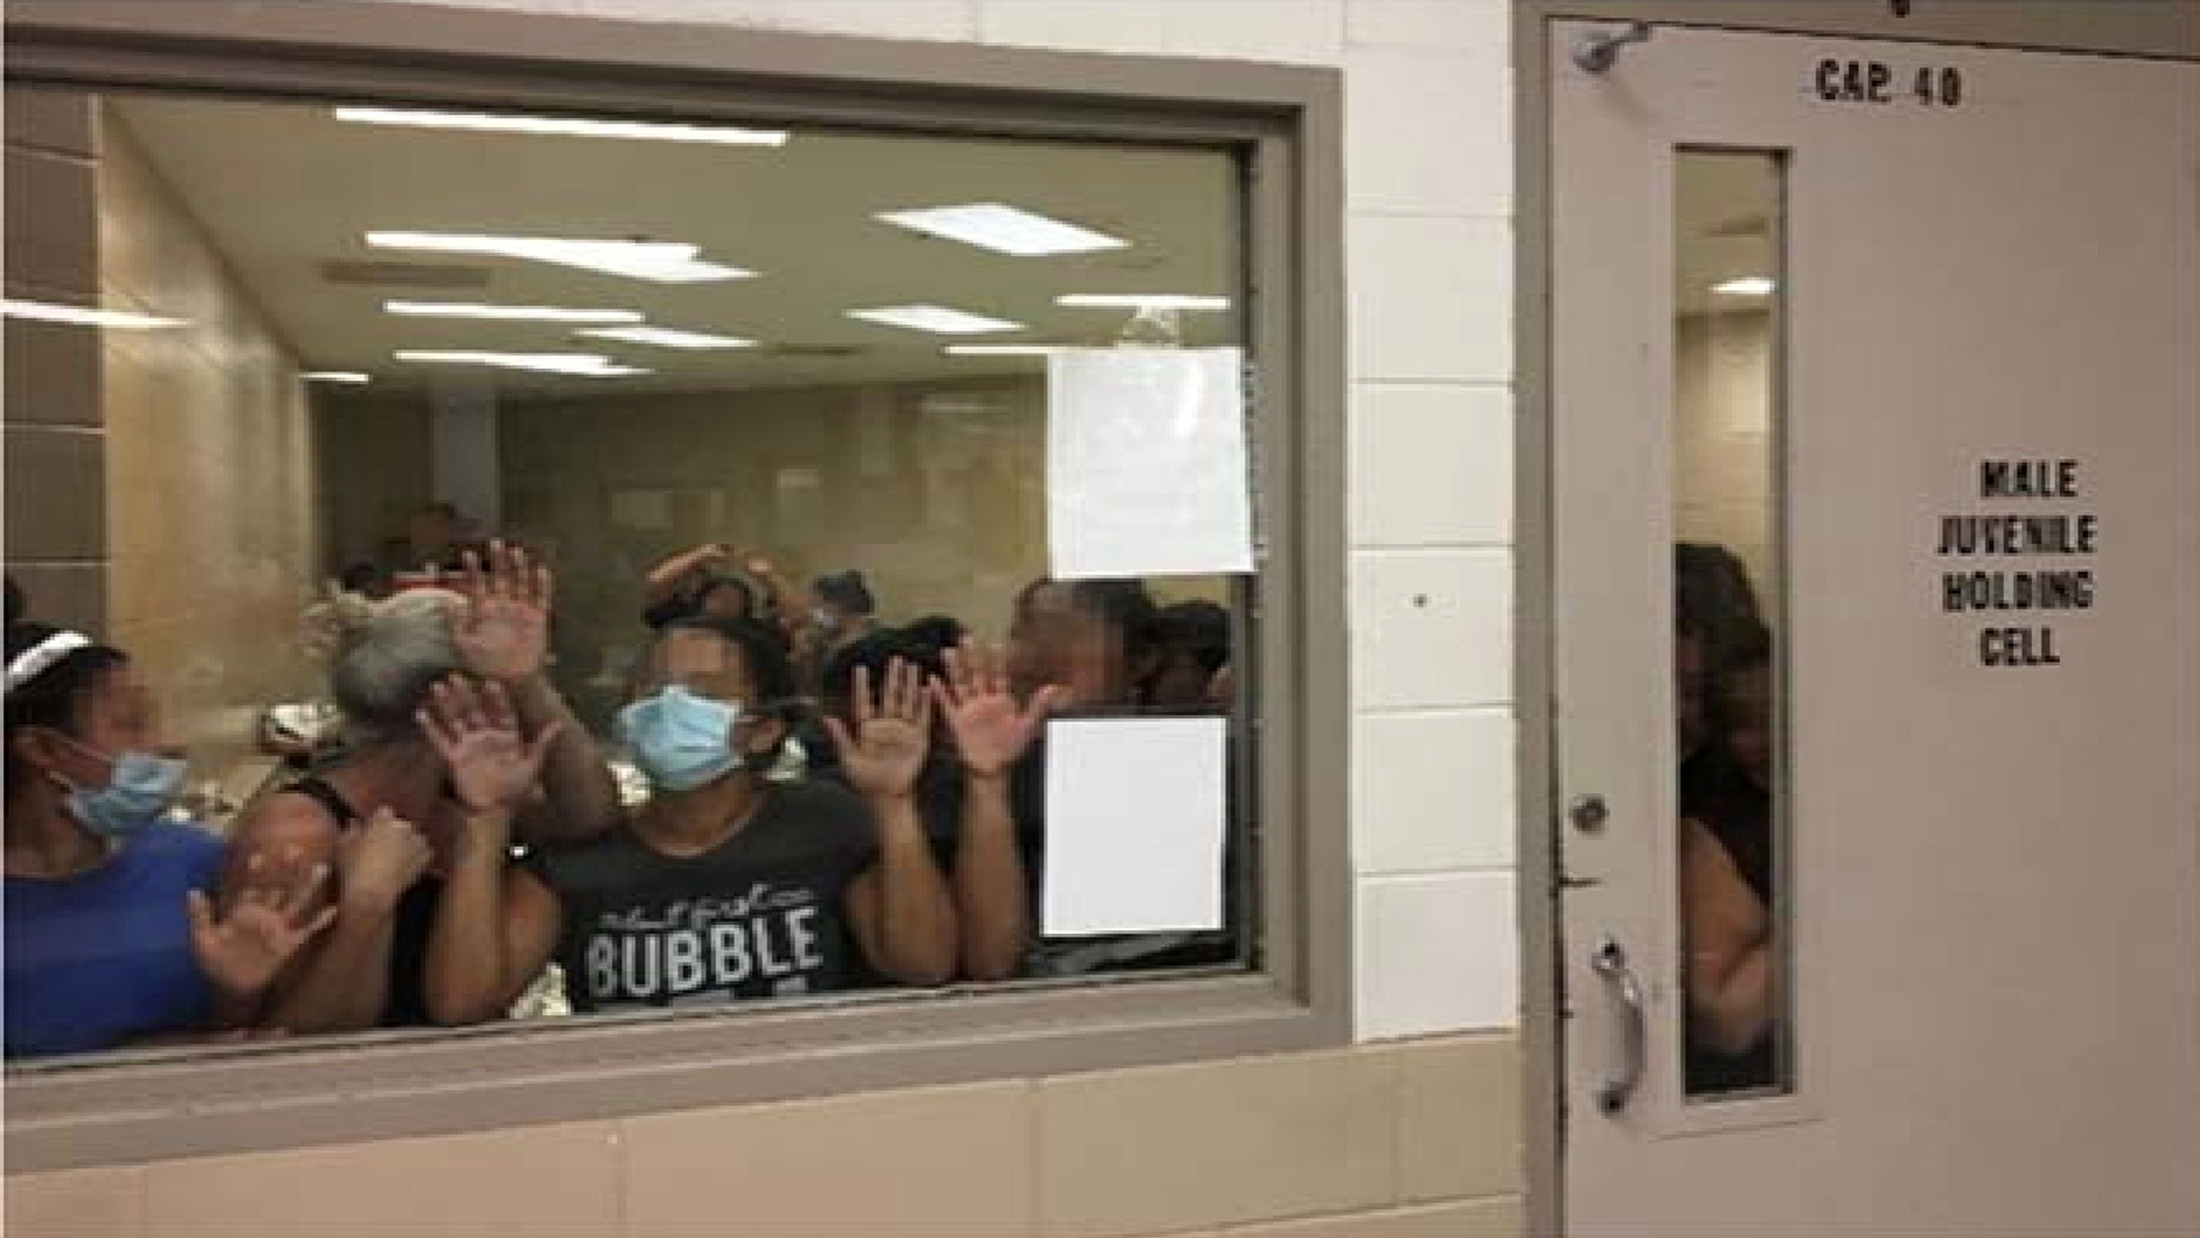 Some of a group of 51 adult females press against the window of a cell built to hold 40 male juveniles at Fort Brown Border Patrol station in a still image from video in Brownsville, Texas, U.S. on June 12, 2019 and released as part of a report by the Department of Homeland Security's Office of Inspector General on July 2, 2019. Picture pixelated at source. Office of Inspector General/DHS/Handout via REUTERS